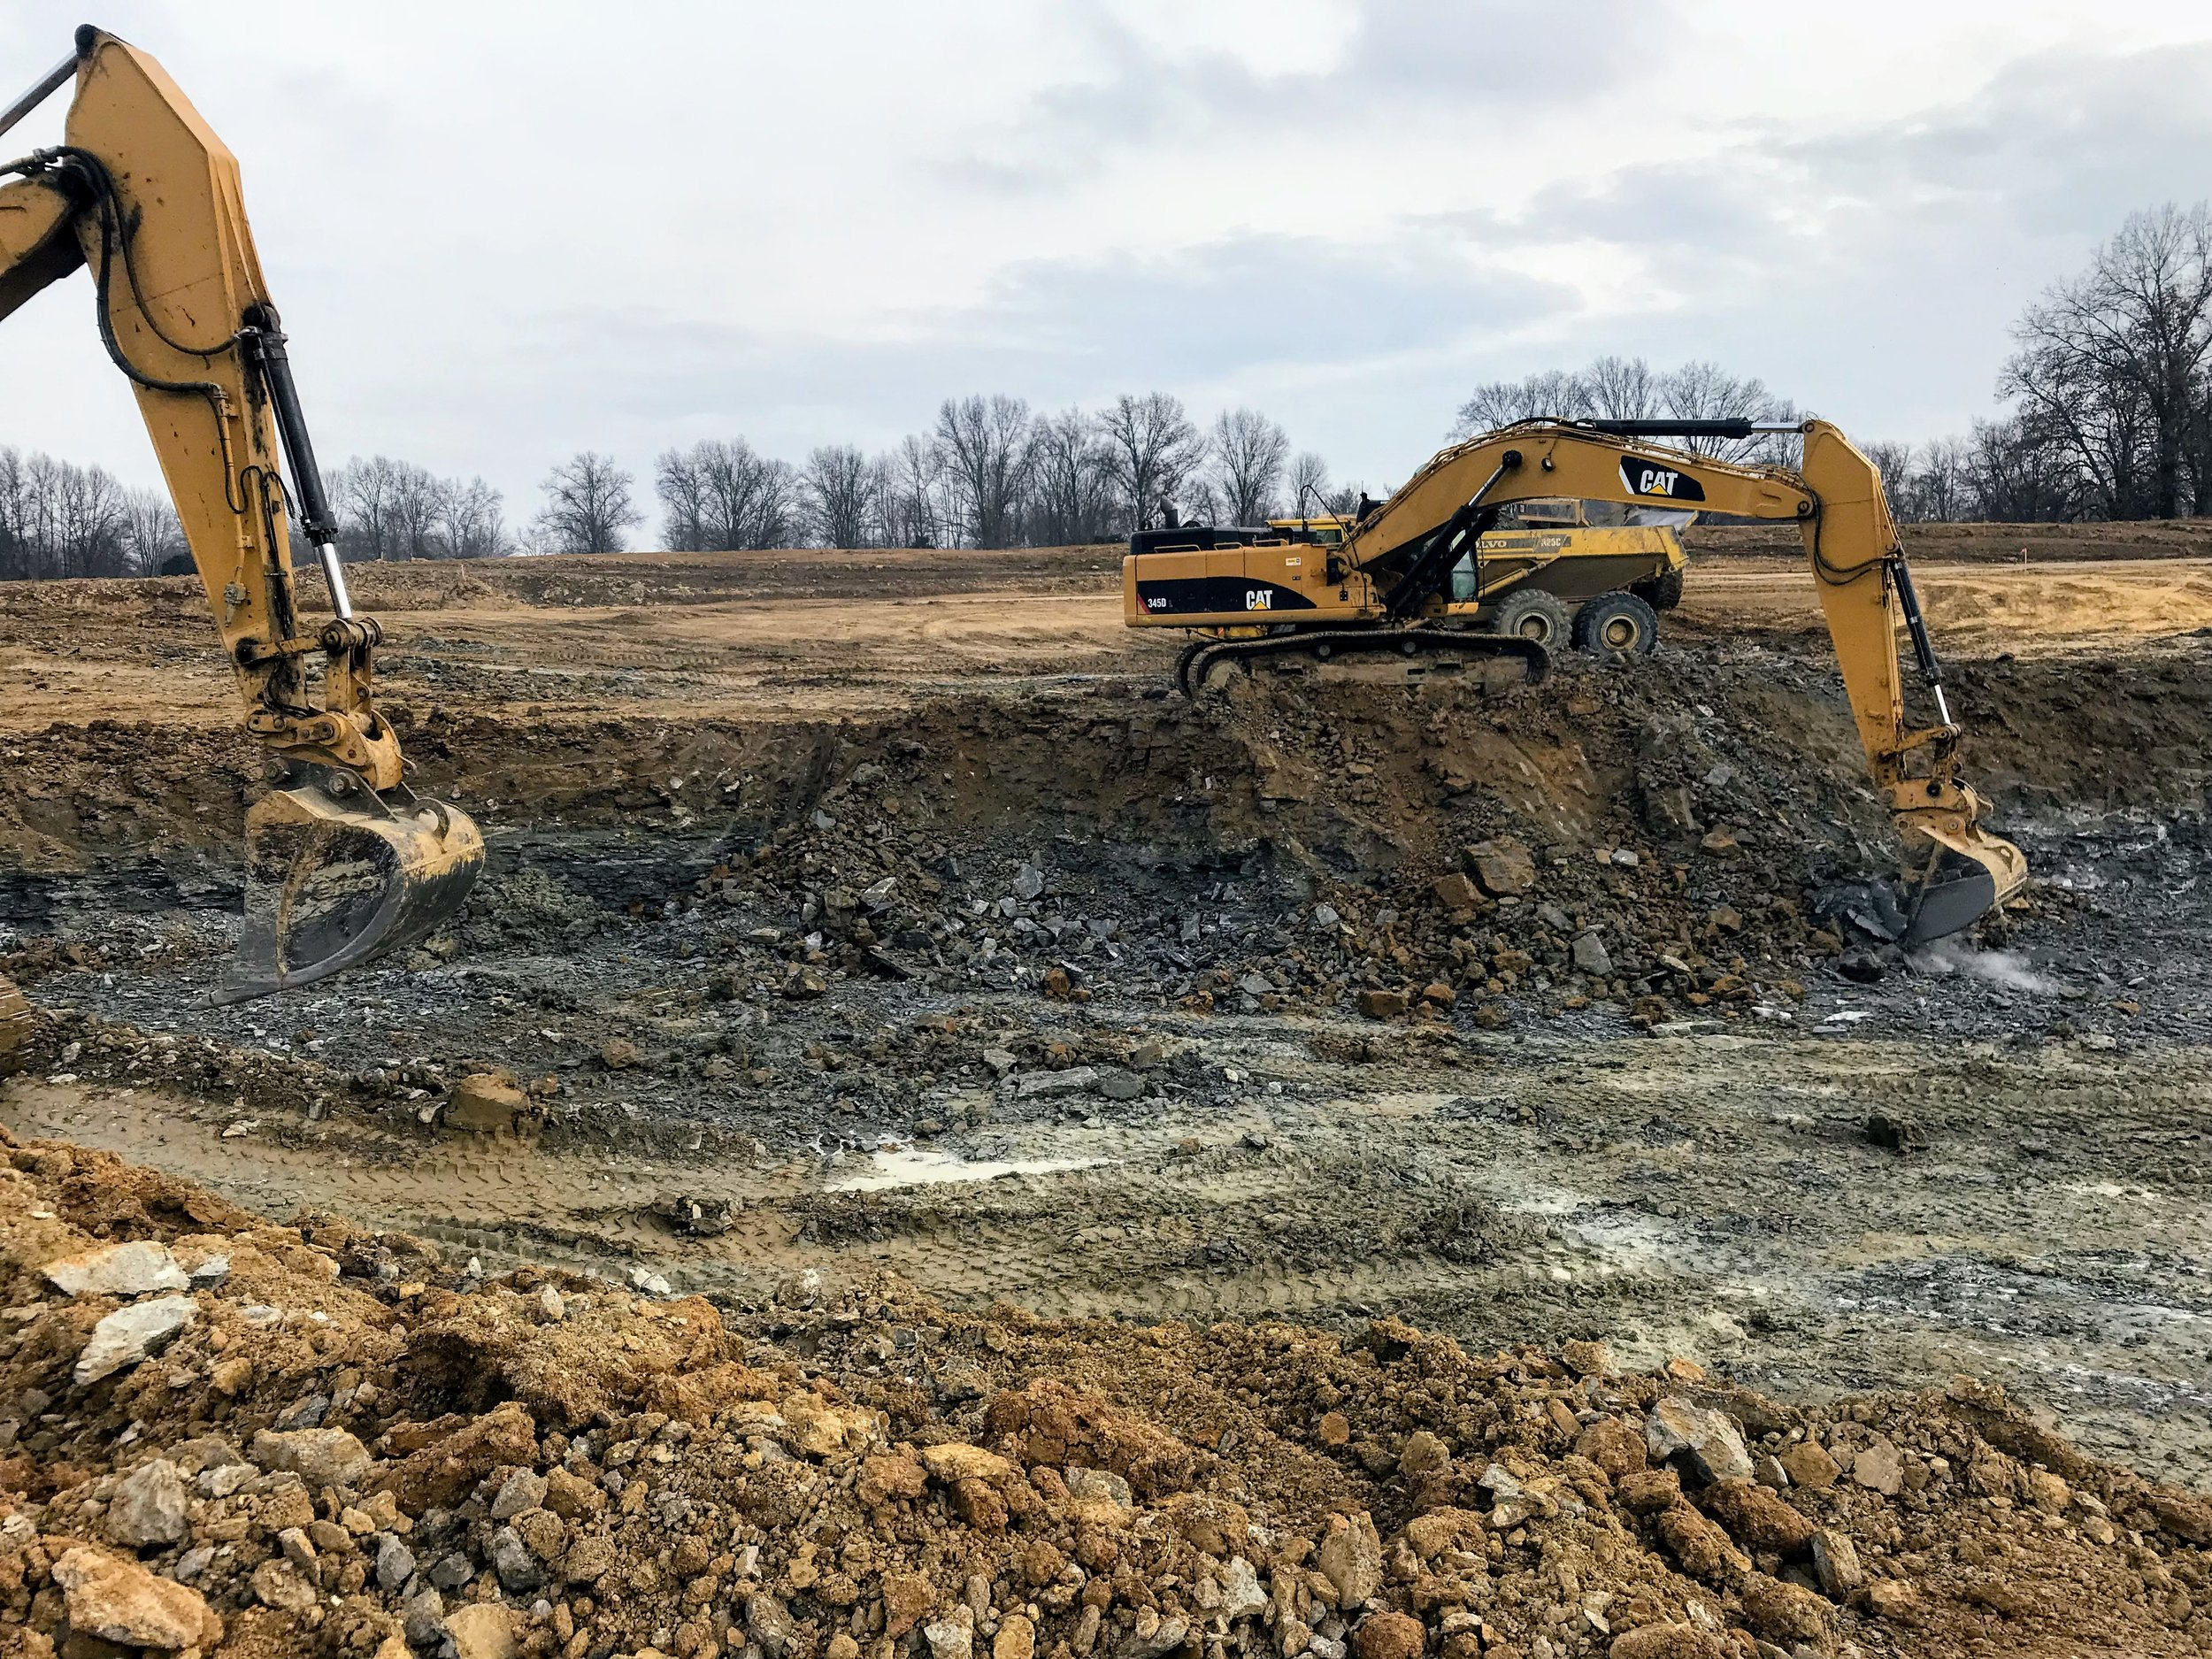 Land Clearing SErvices - Earth Moving for Residential, Commercial & Industrial